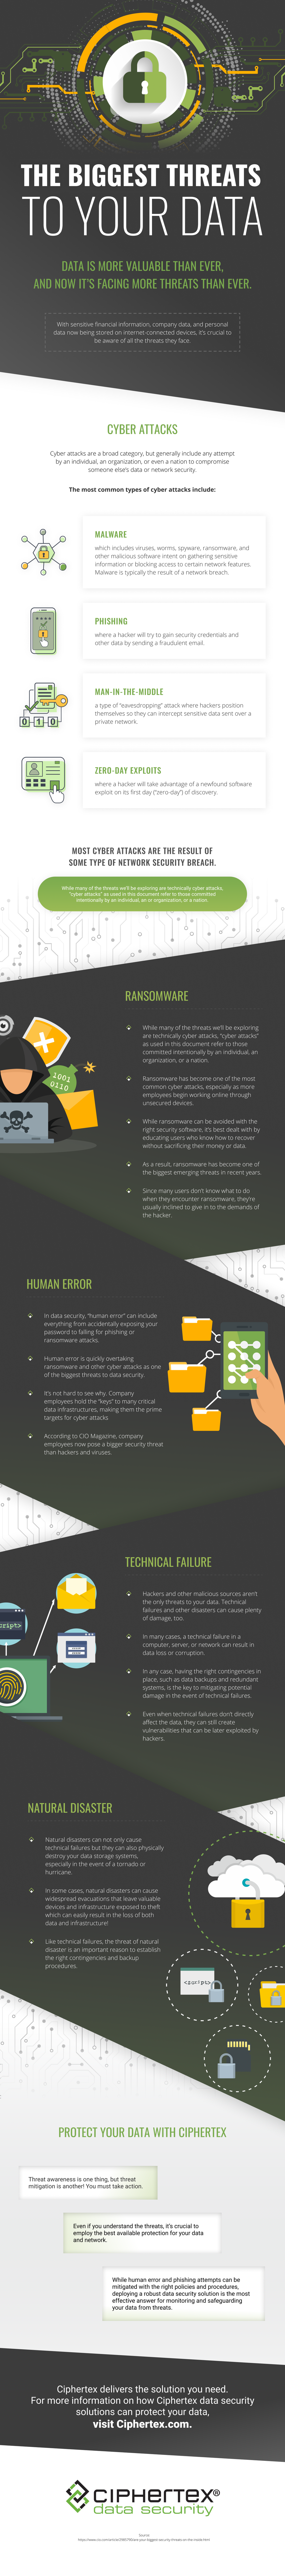 The Biggest Threats to Your Data Infographic